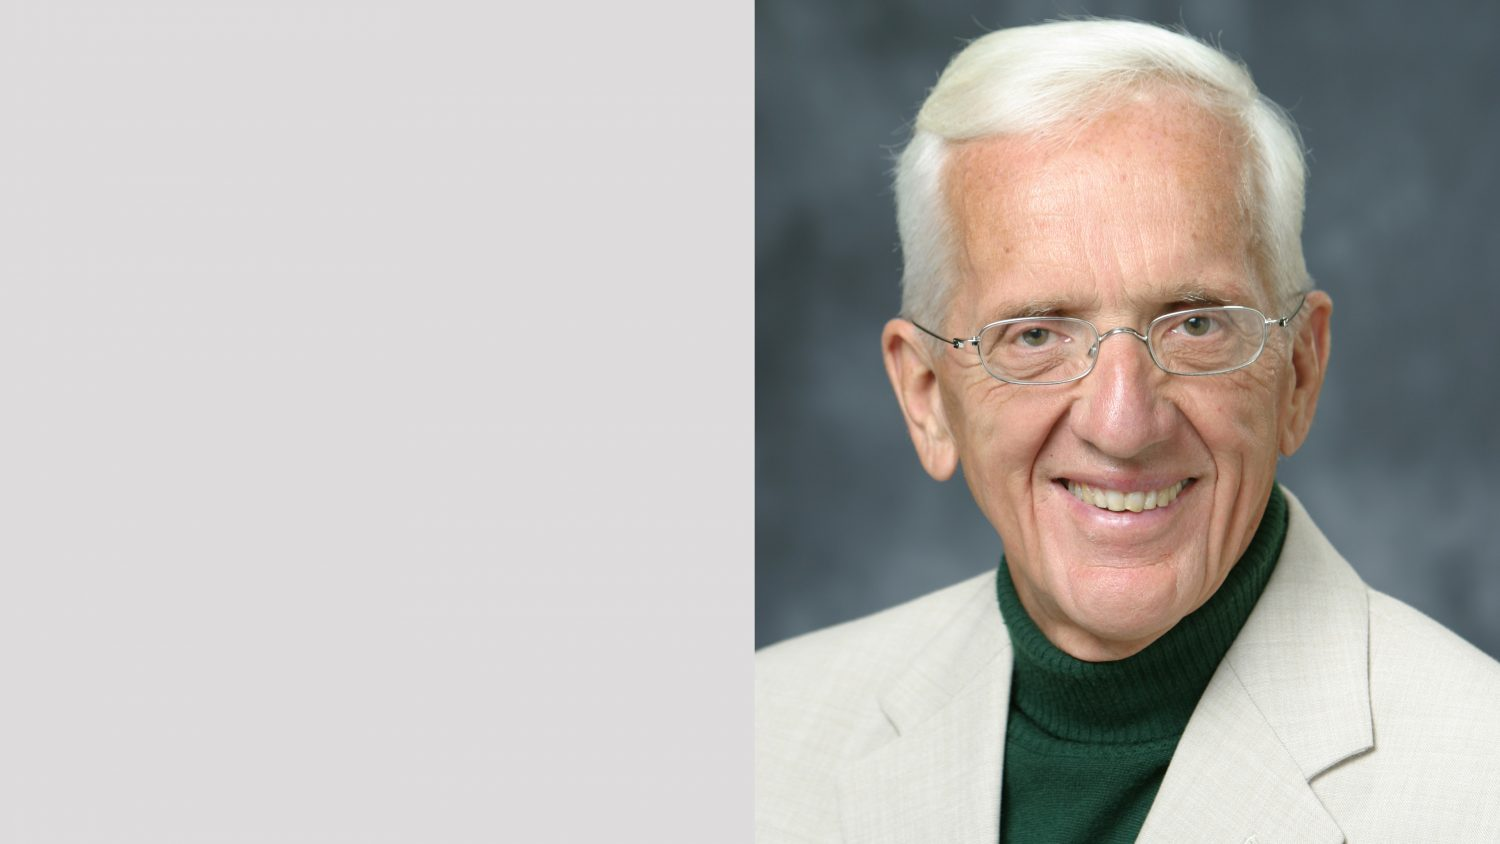 The Naked Truth: Interview with T. Colin Campbell, PhD